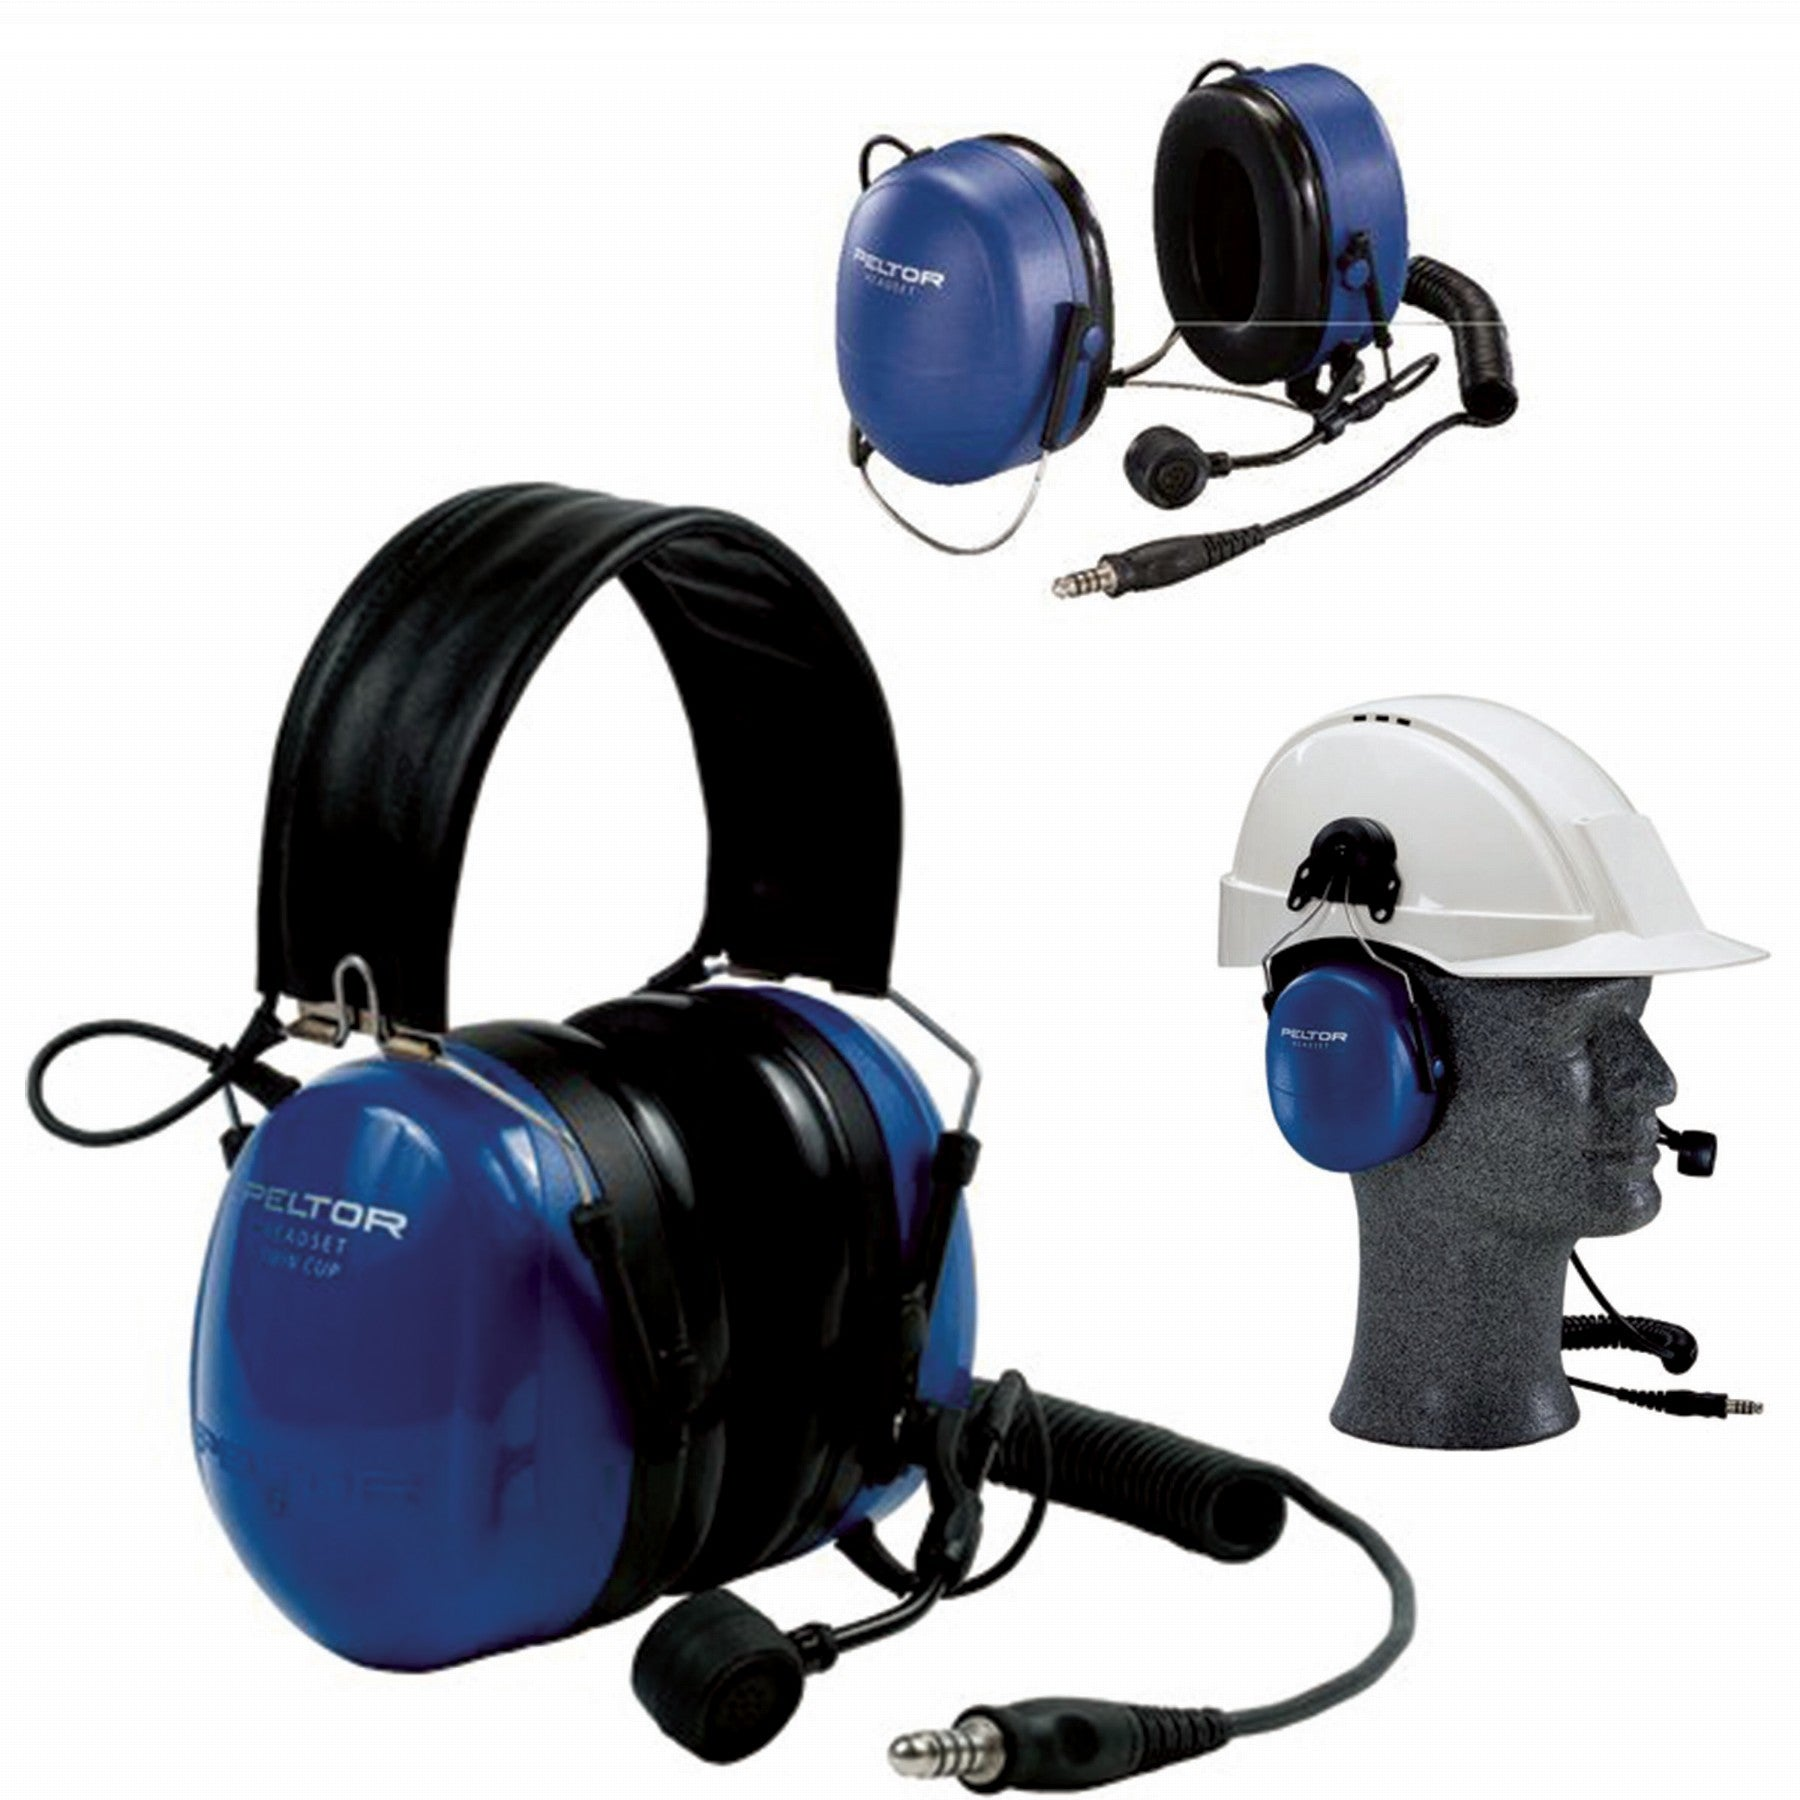 3M Peltor High Attenuation Headsets, ATEX Approved